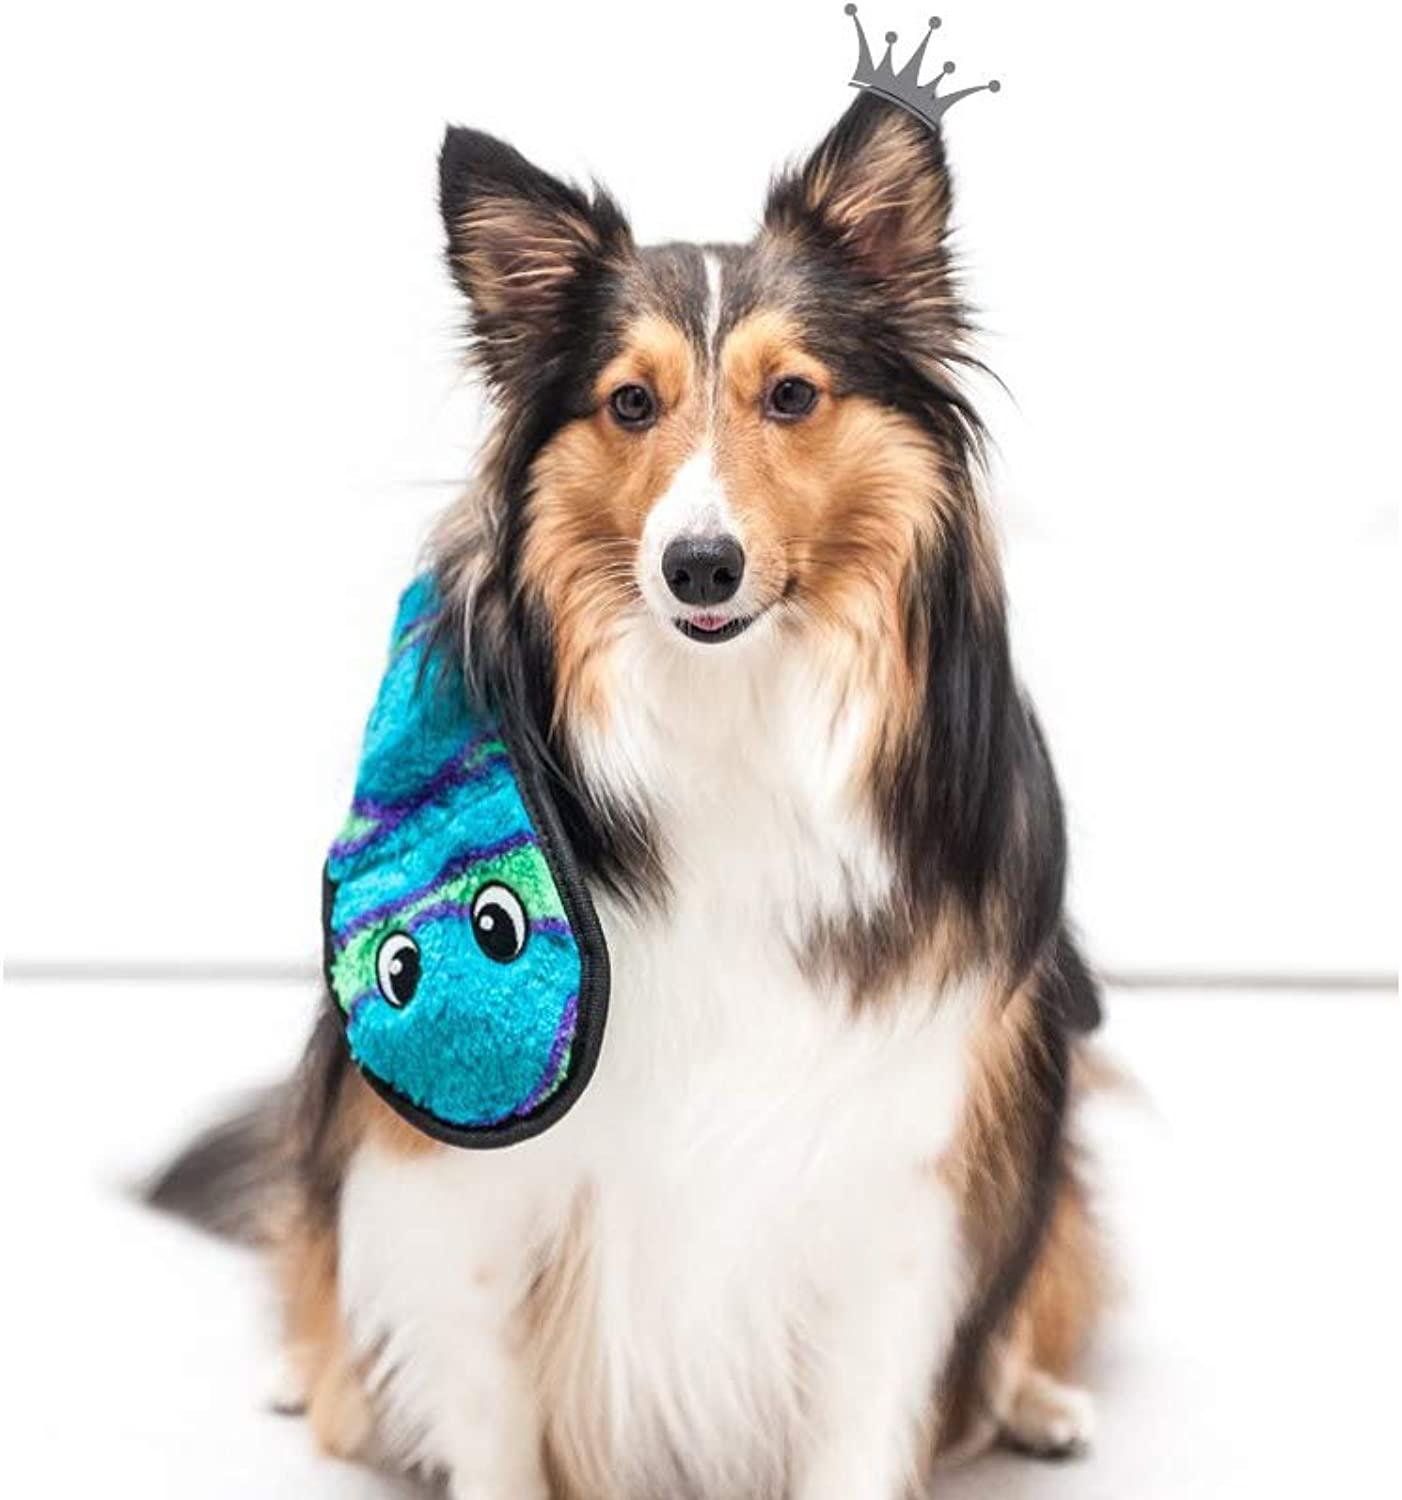 2 Pcs Pet Vocal Plush Toy Cobra Shaped Vocal Plush Toy Chew Interactive Squeaky Toy Suitable for Small and Medium Dogs